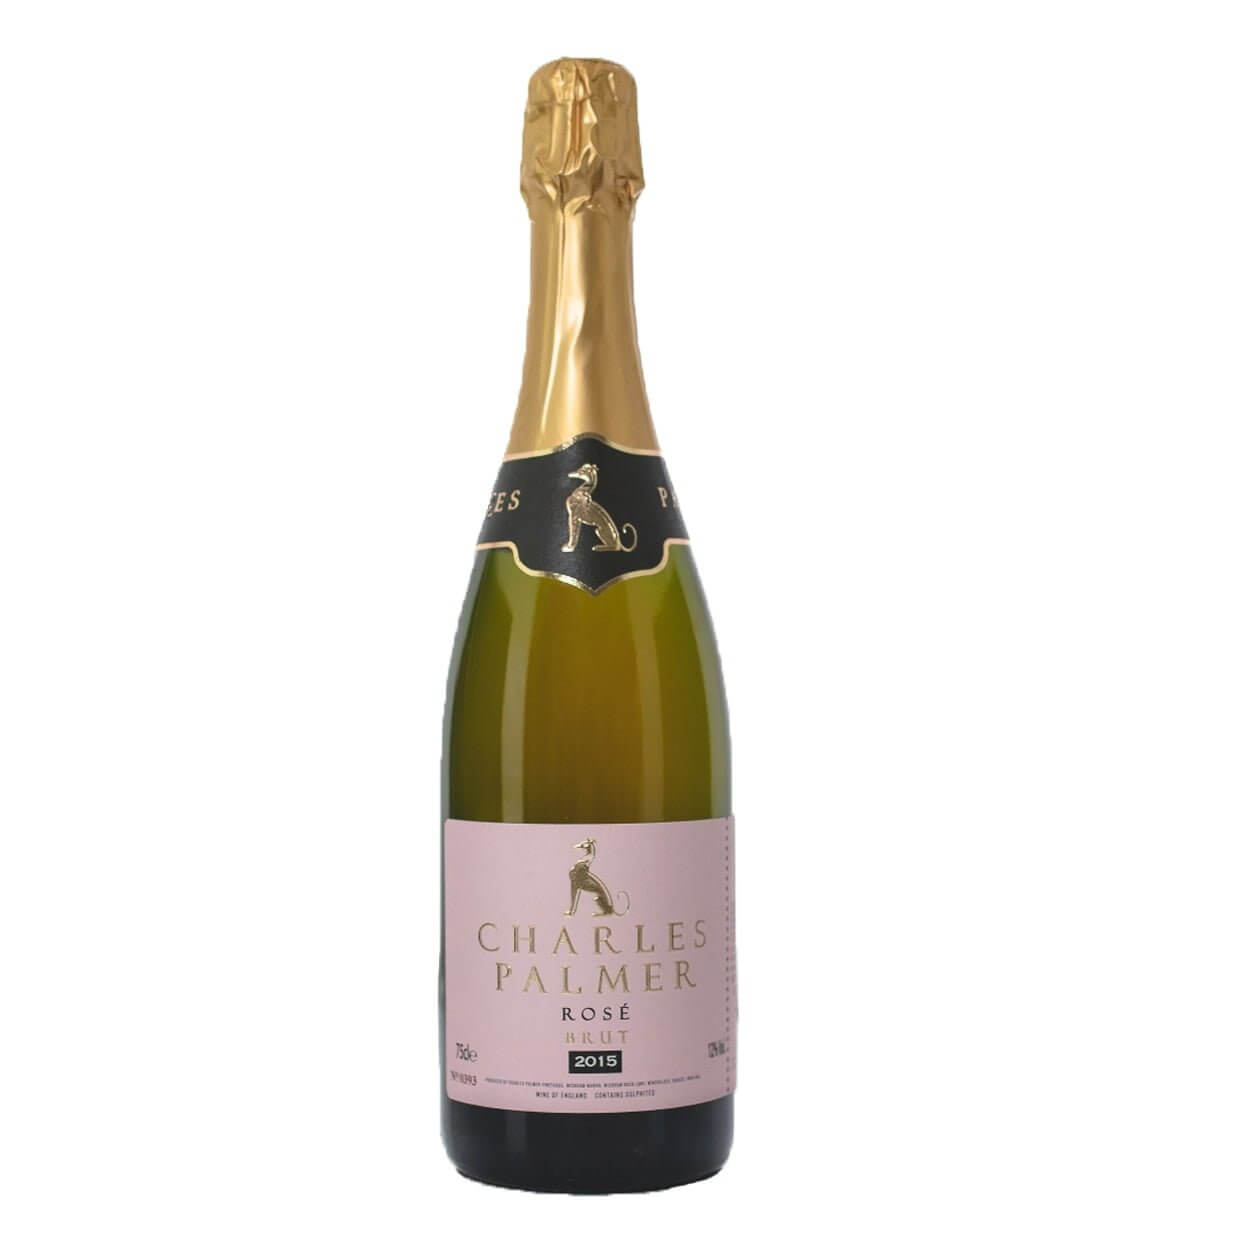 Charles Palmer Rosé 2015 Sparkling English Wine